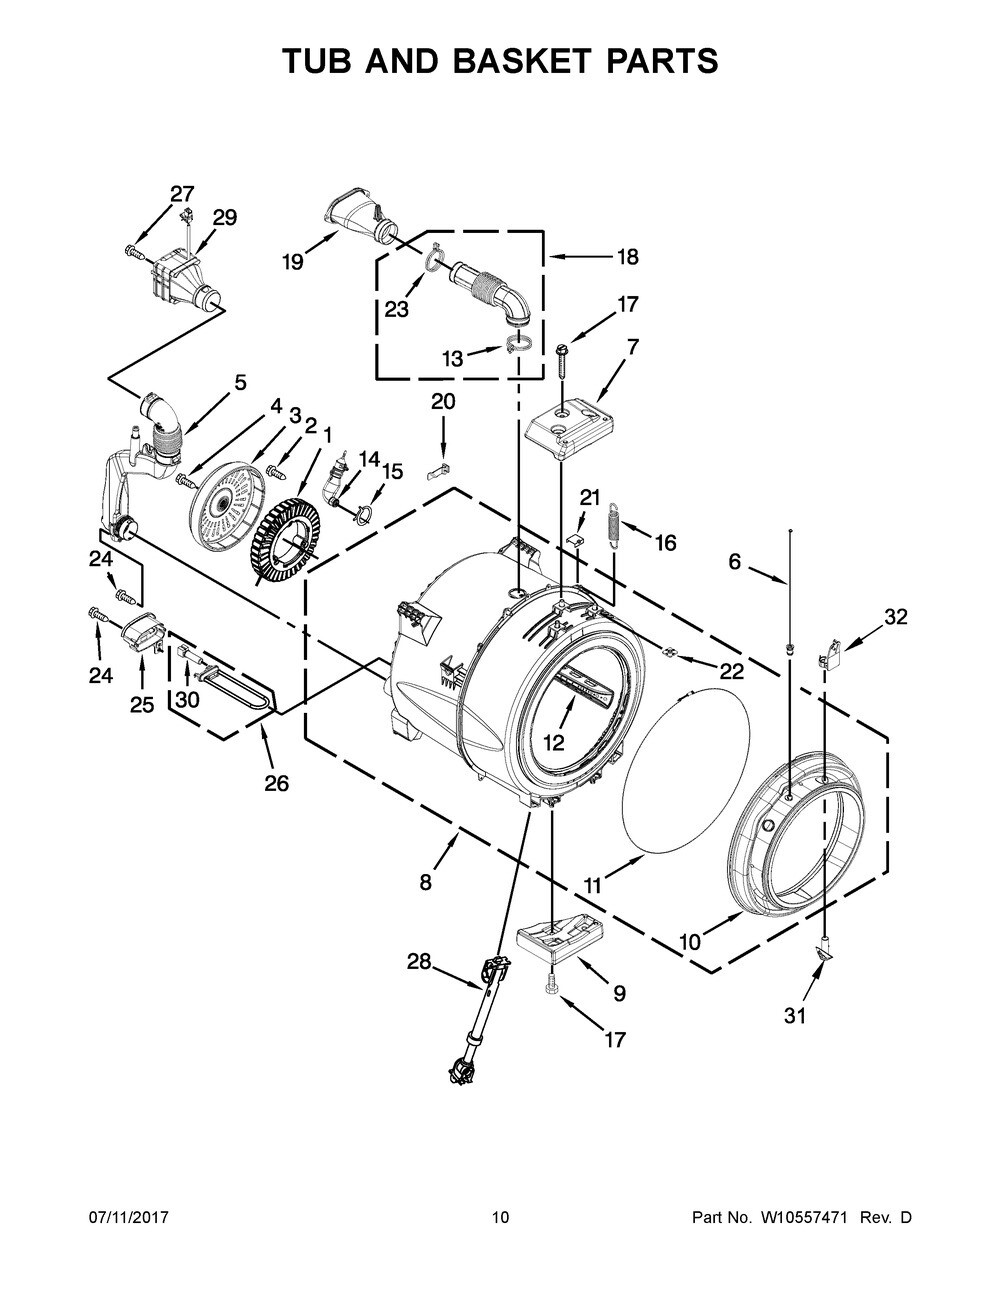 Part# WPW10450389 - TUB-OUTER